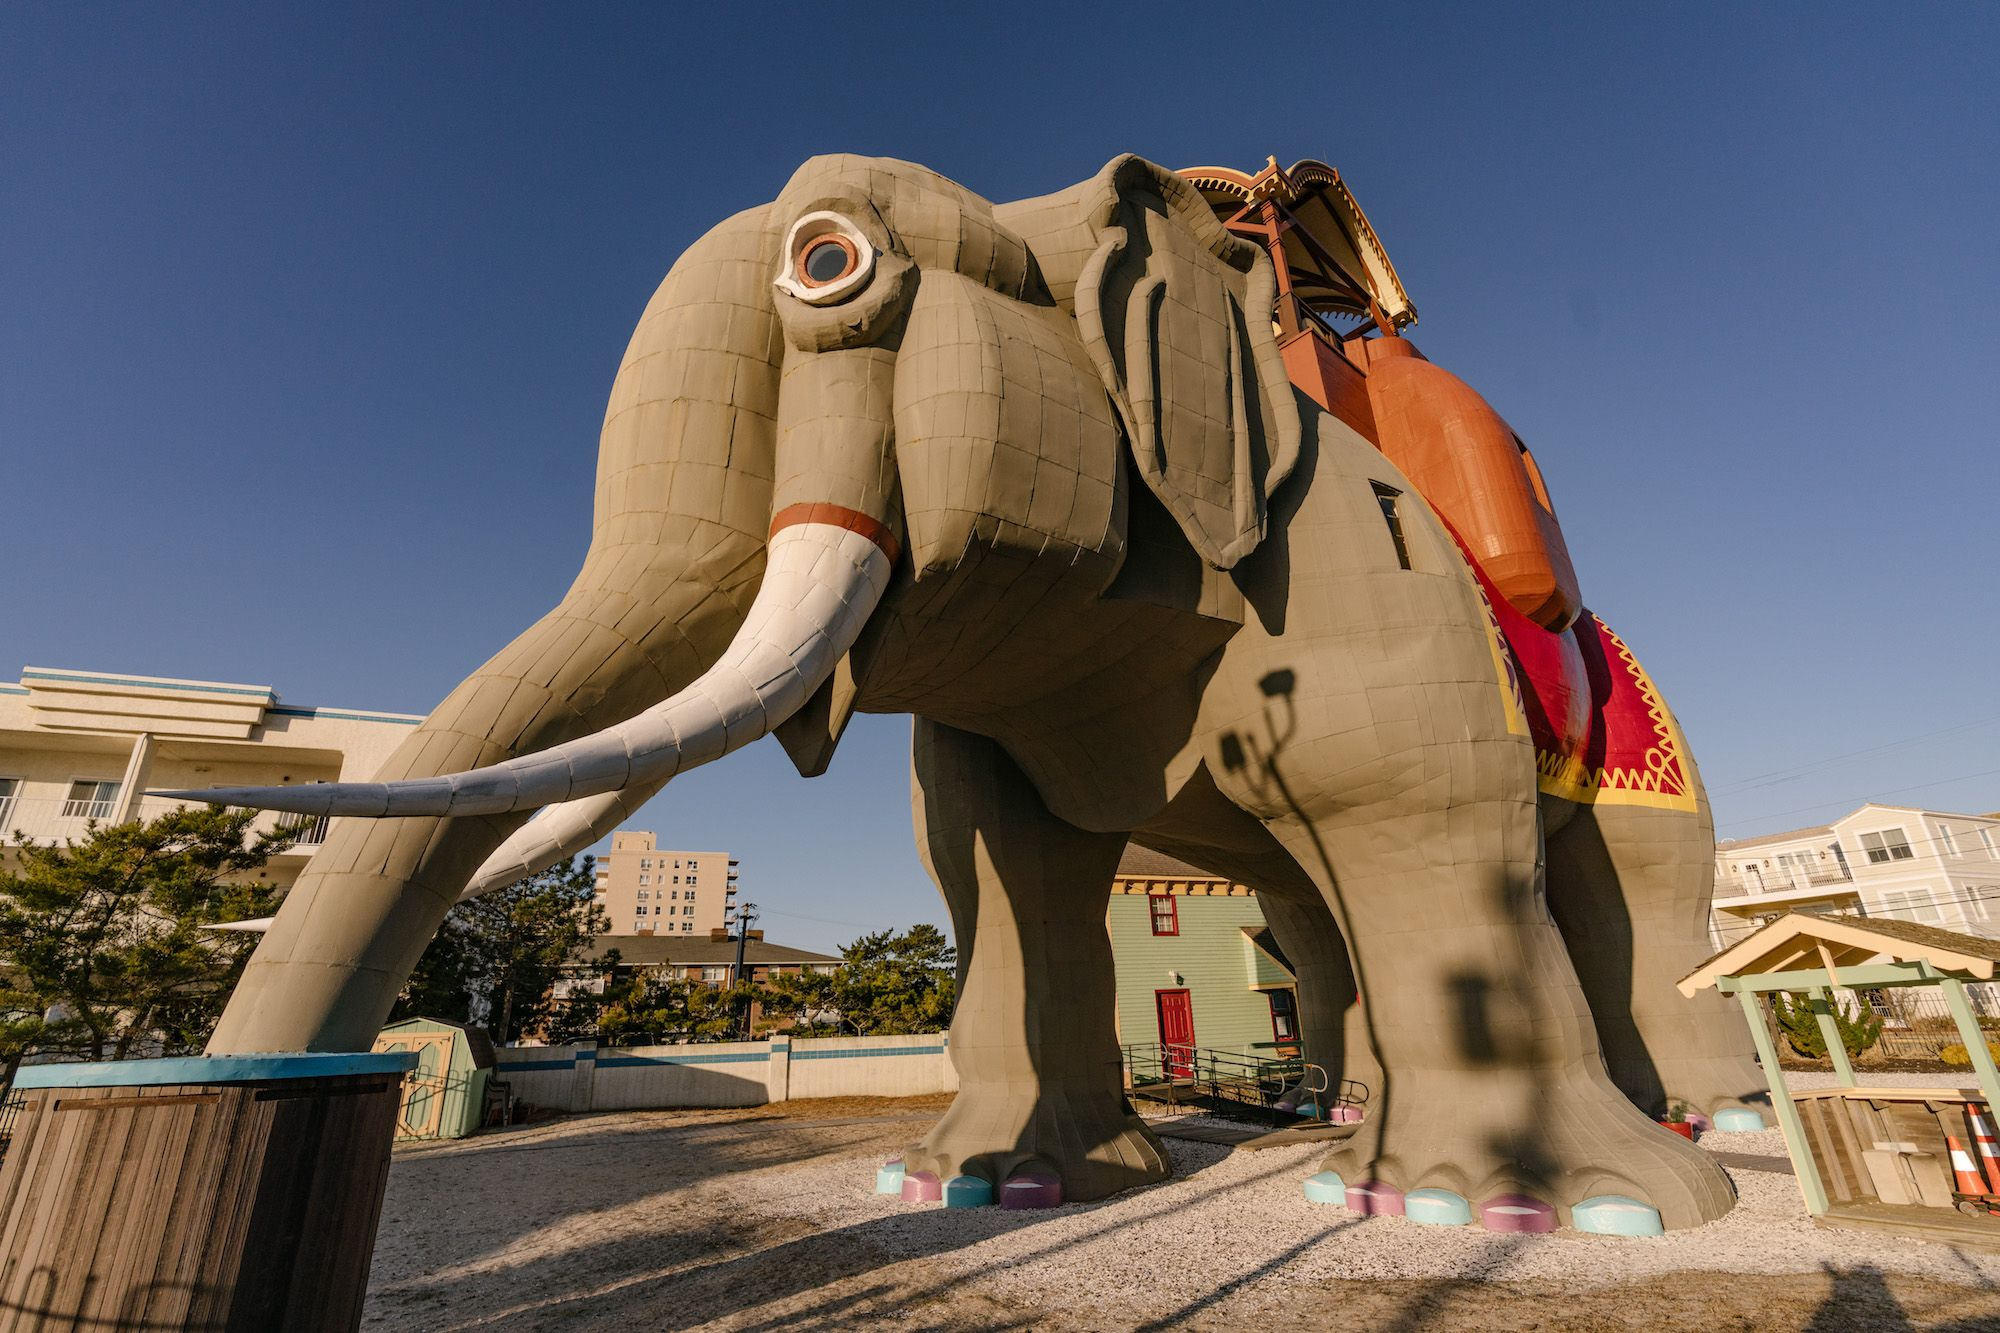 This Iconic Elephant Statue Will Be on Airbnb for a Limited Time in March